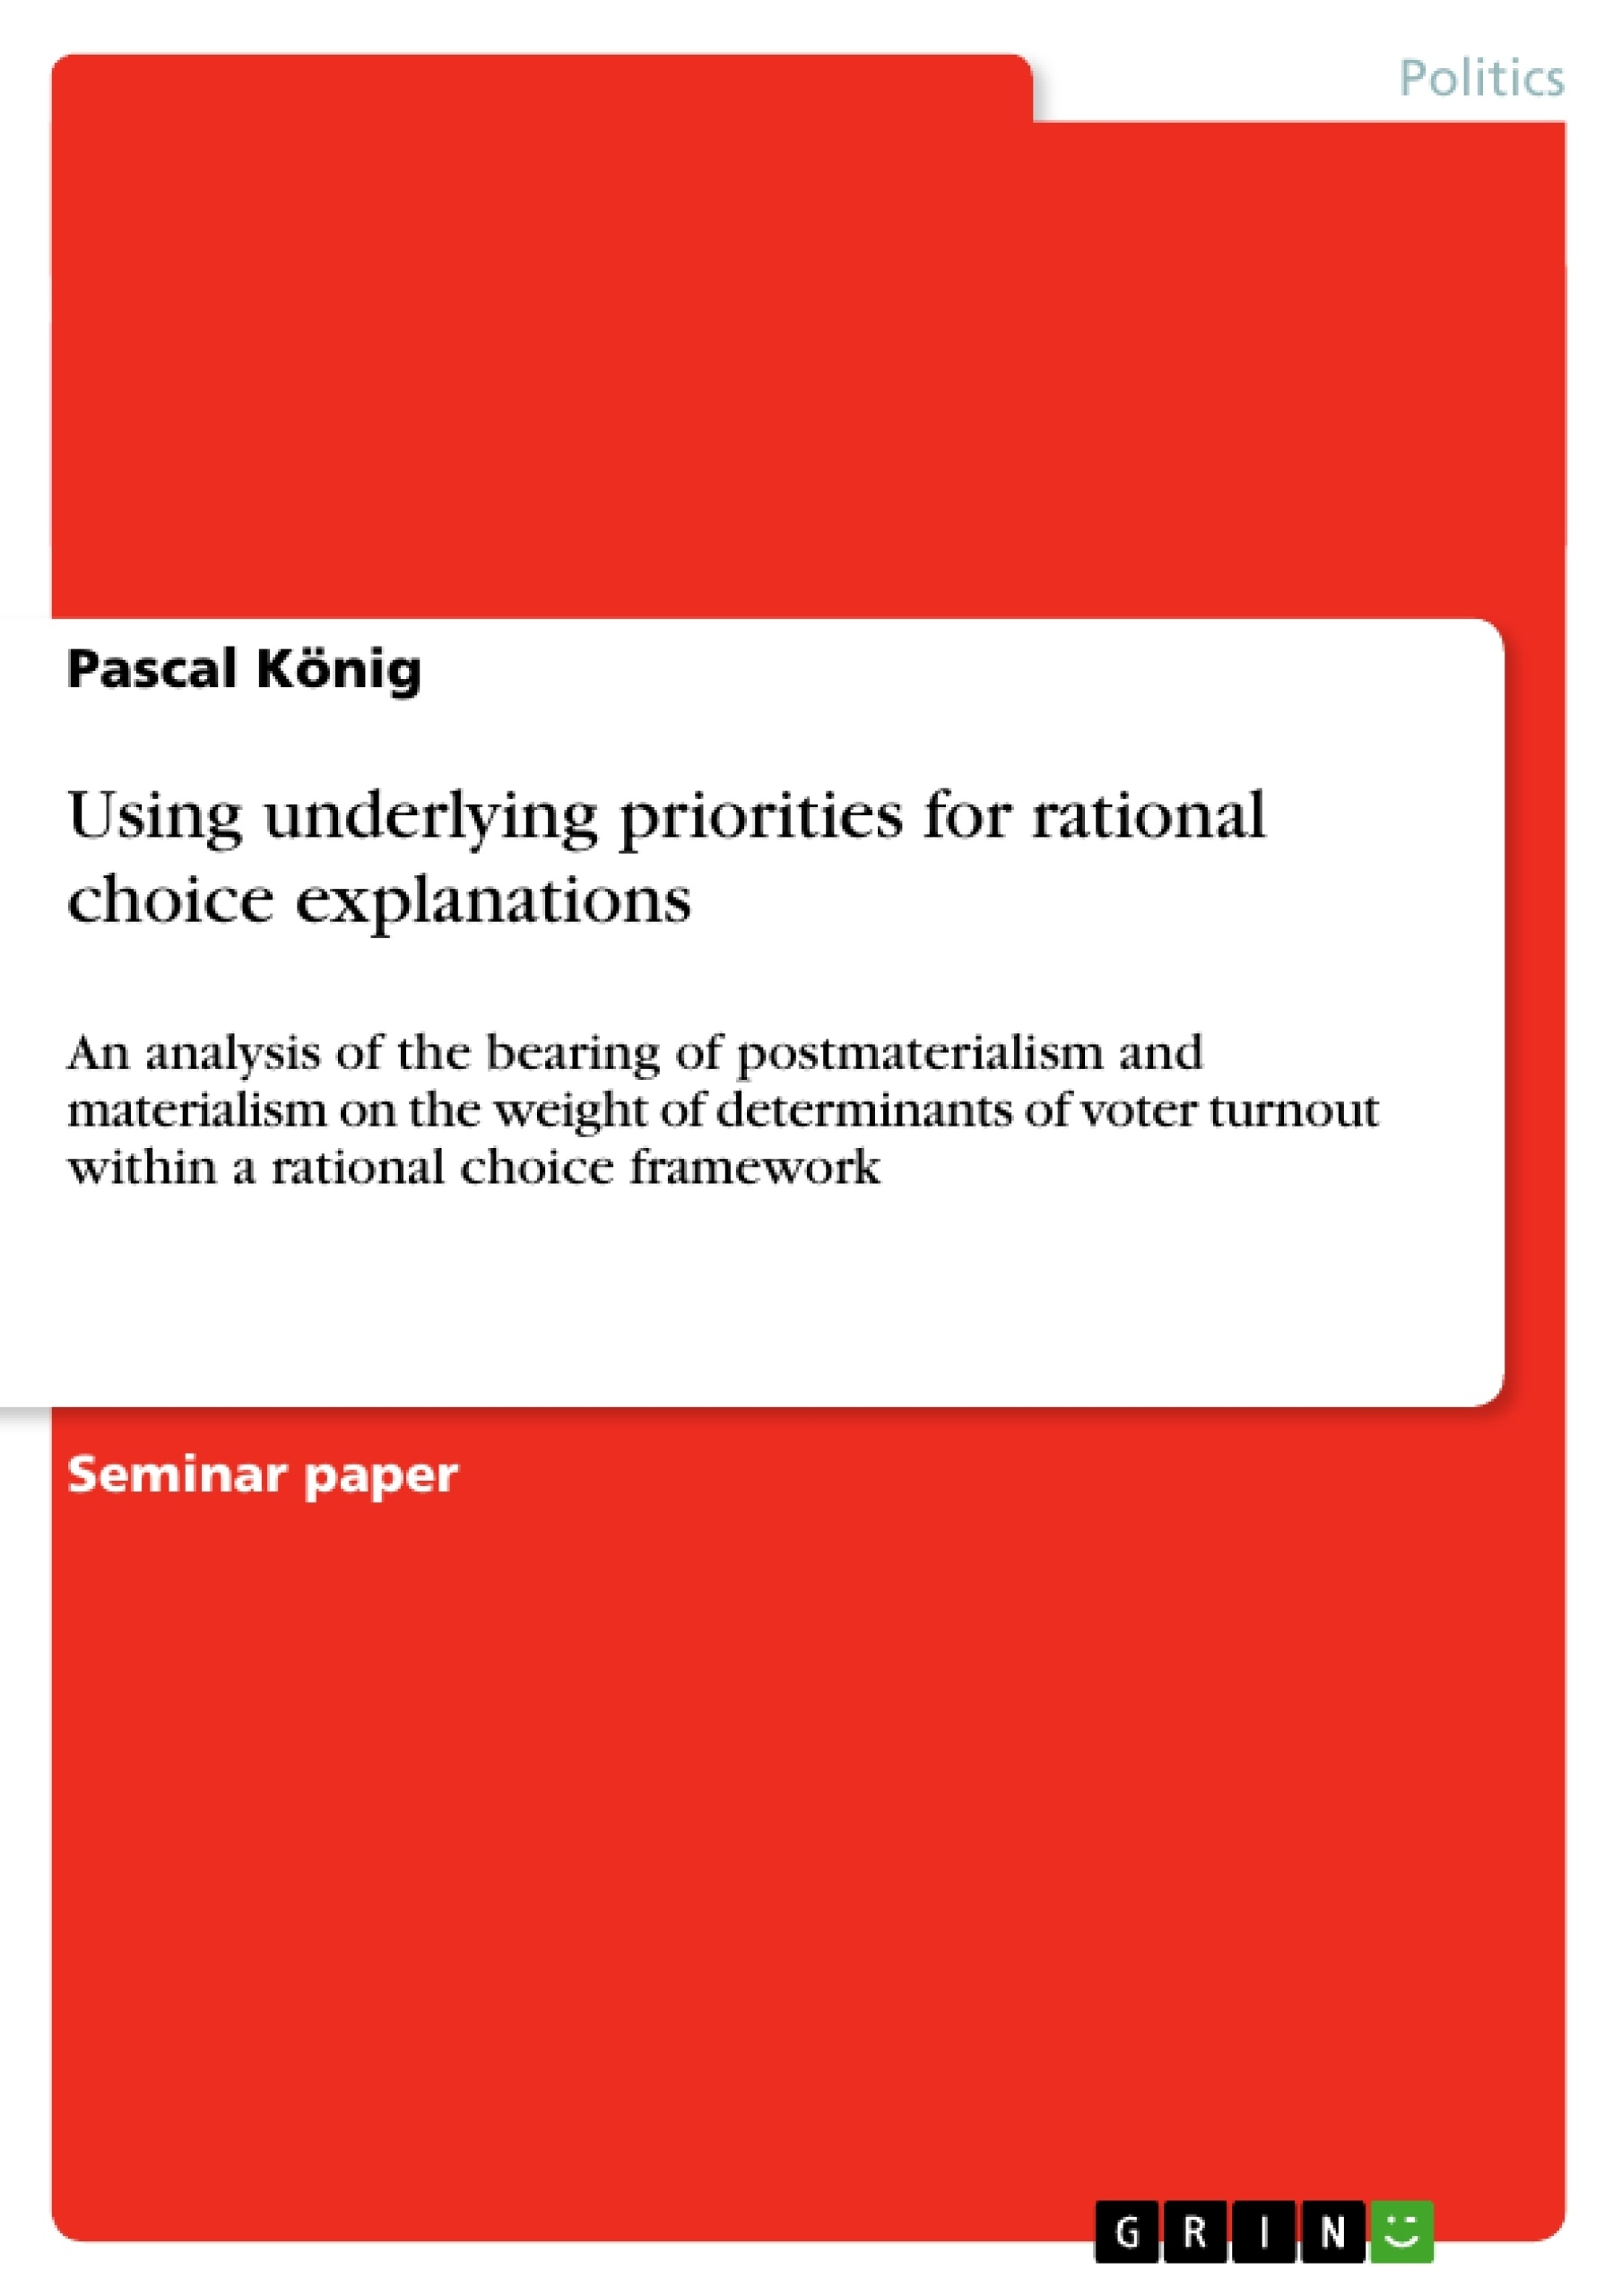 Title: Using underlying priorities for rational choice explanations